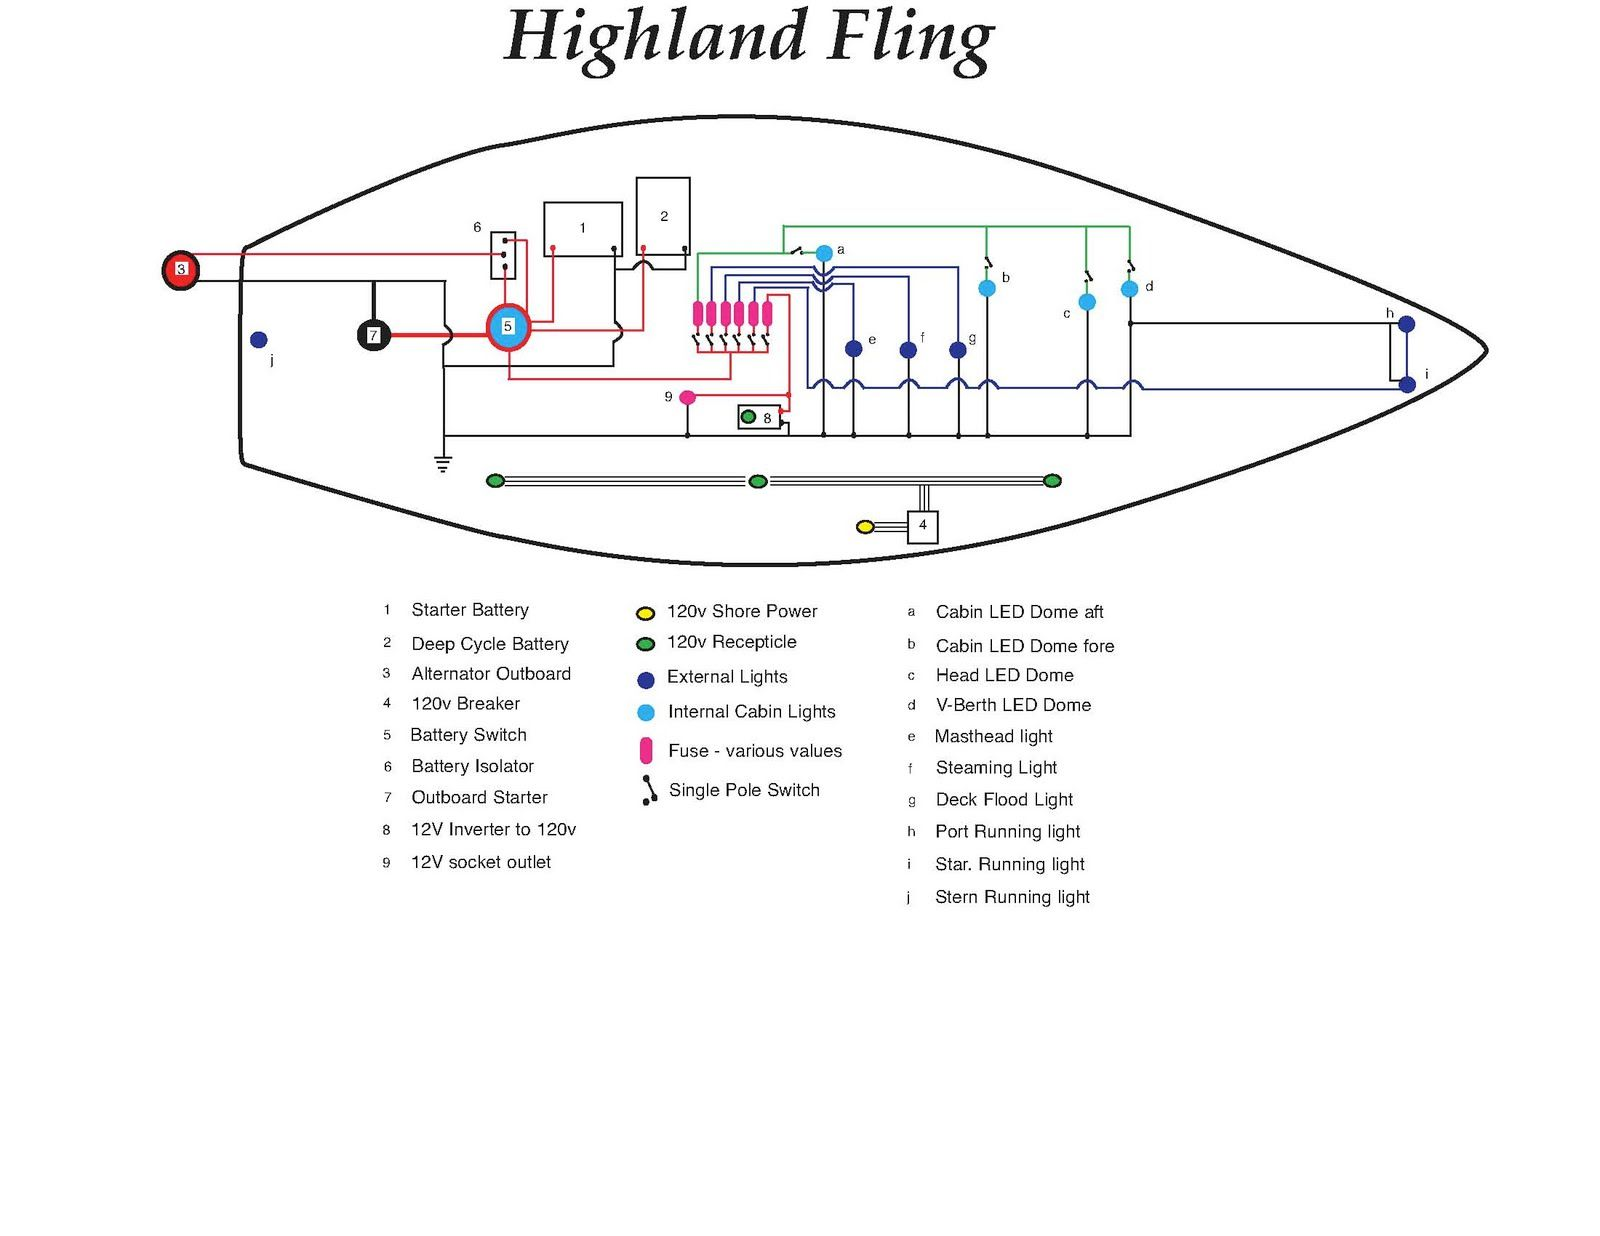 ffdec787036bb8e361b38a7fe86274dc highland fling, my grampian 26 sailboat wiring diagram sailboat wiring schematic at webbmarketing.co